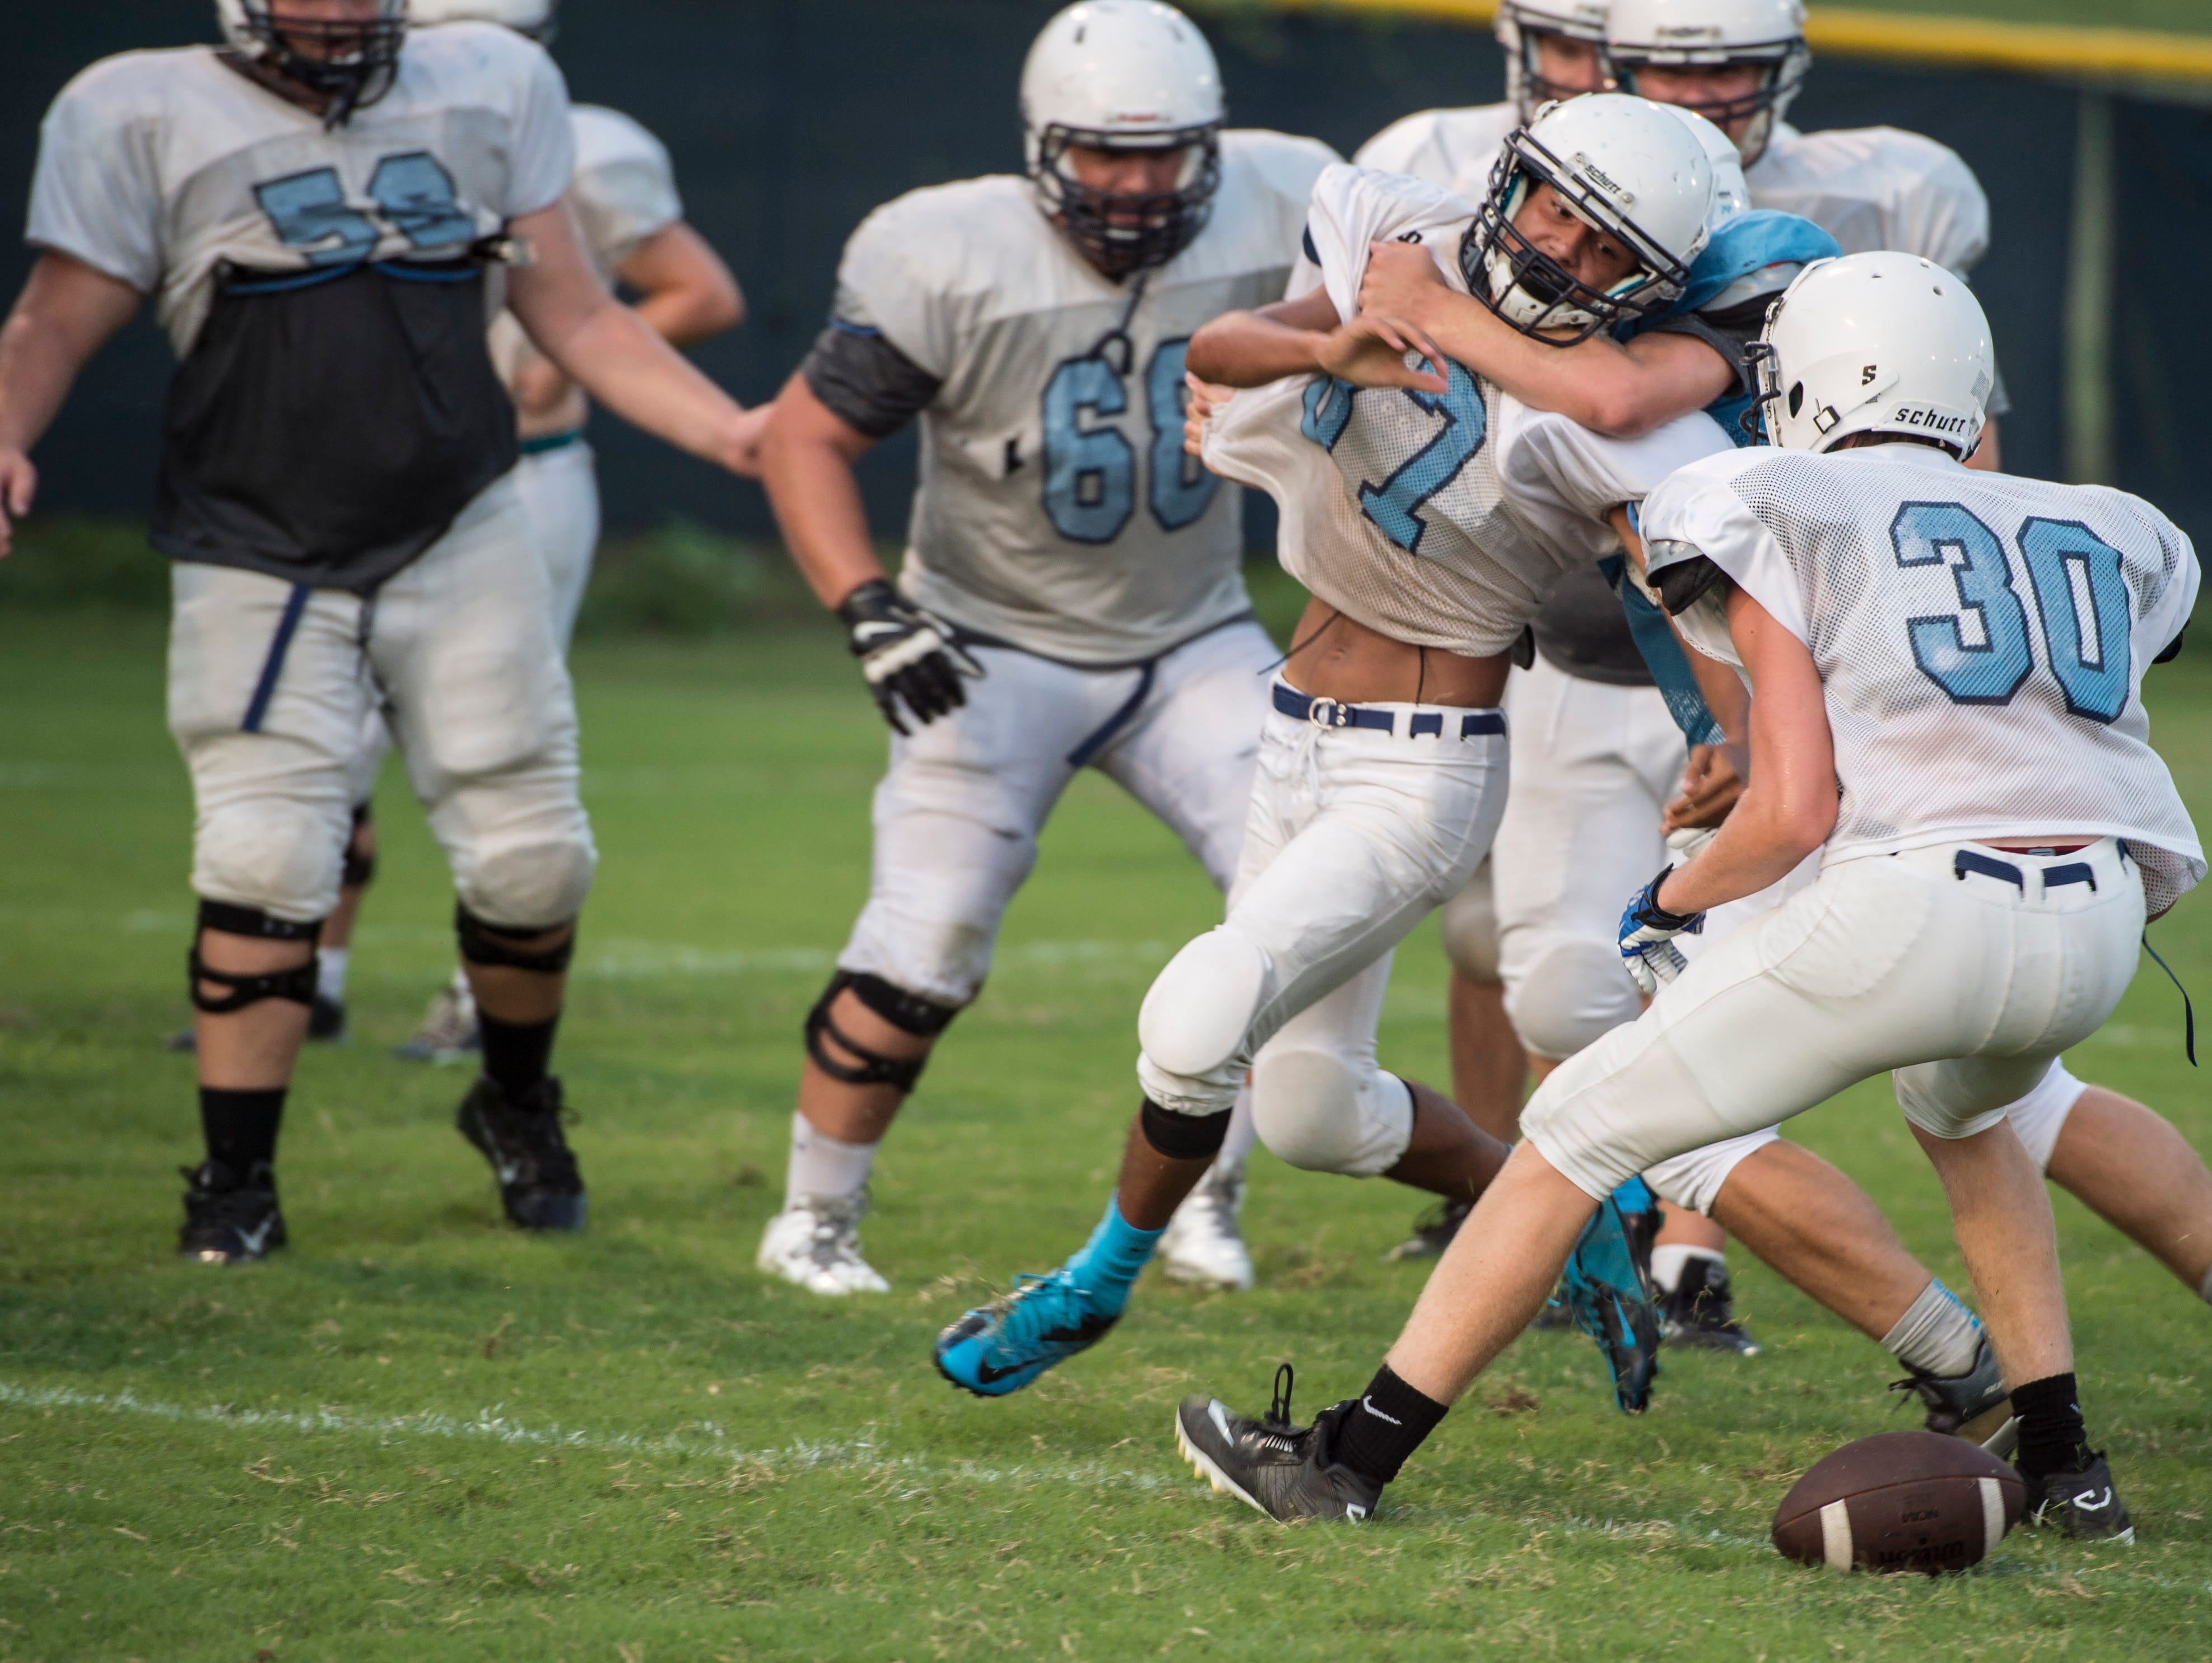 Centennial football players do the savage drill where on player has to get the ball and two players try to keep him from getting it during Centennials HS first day of football practice onTuesday July 28, 2015, in Franklin